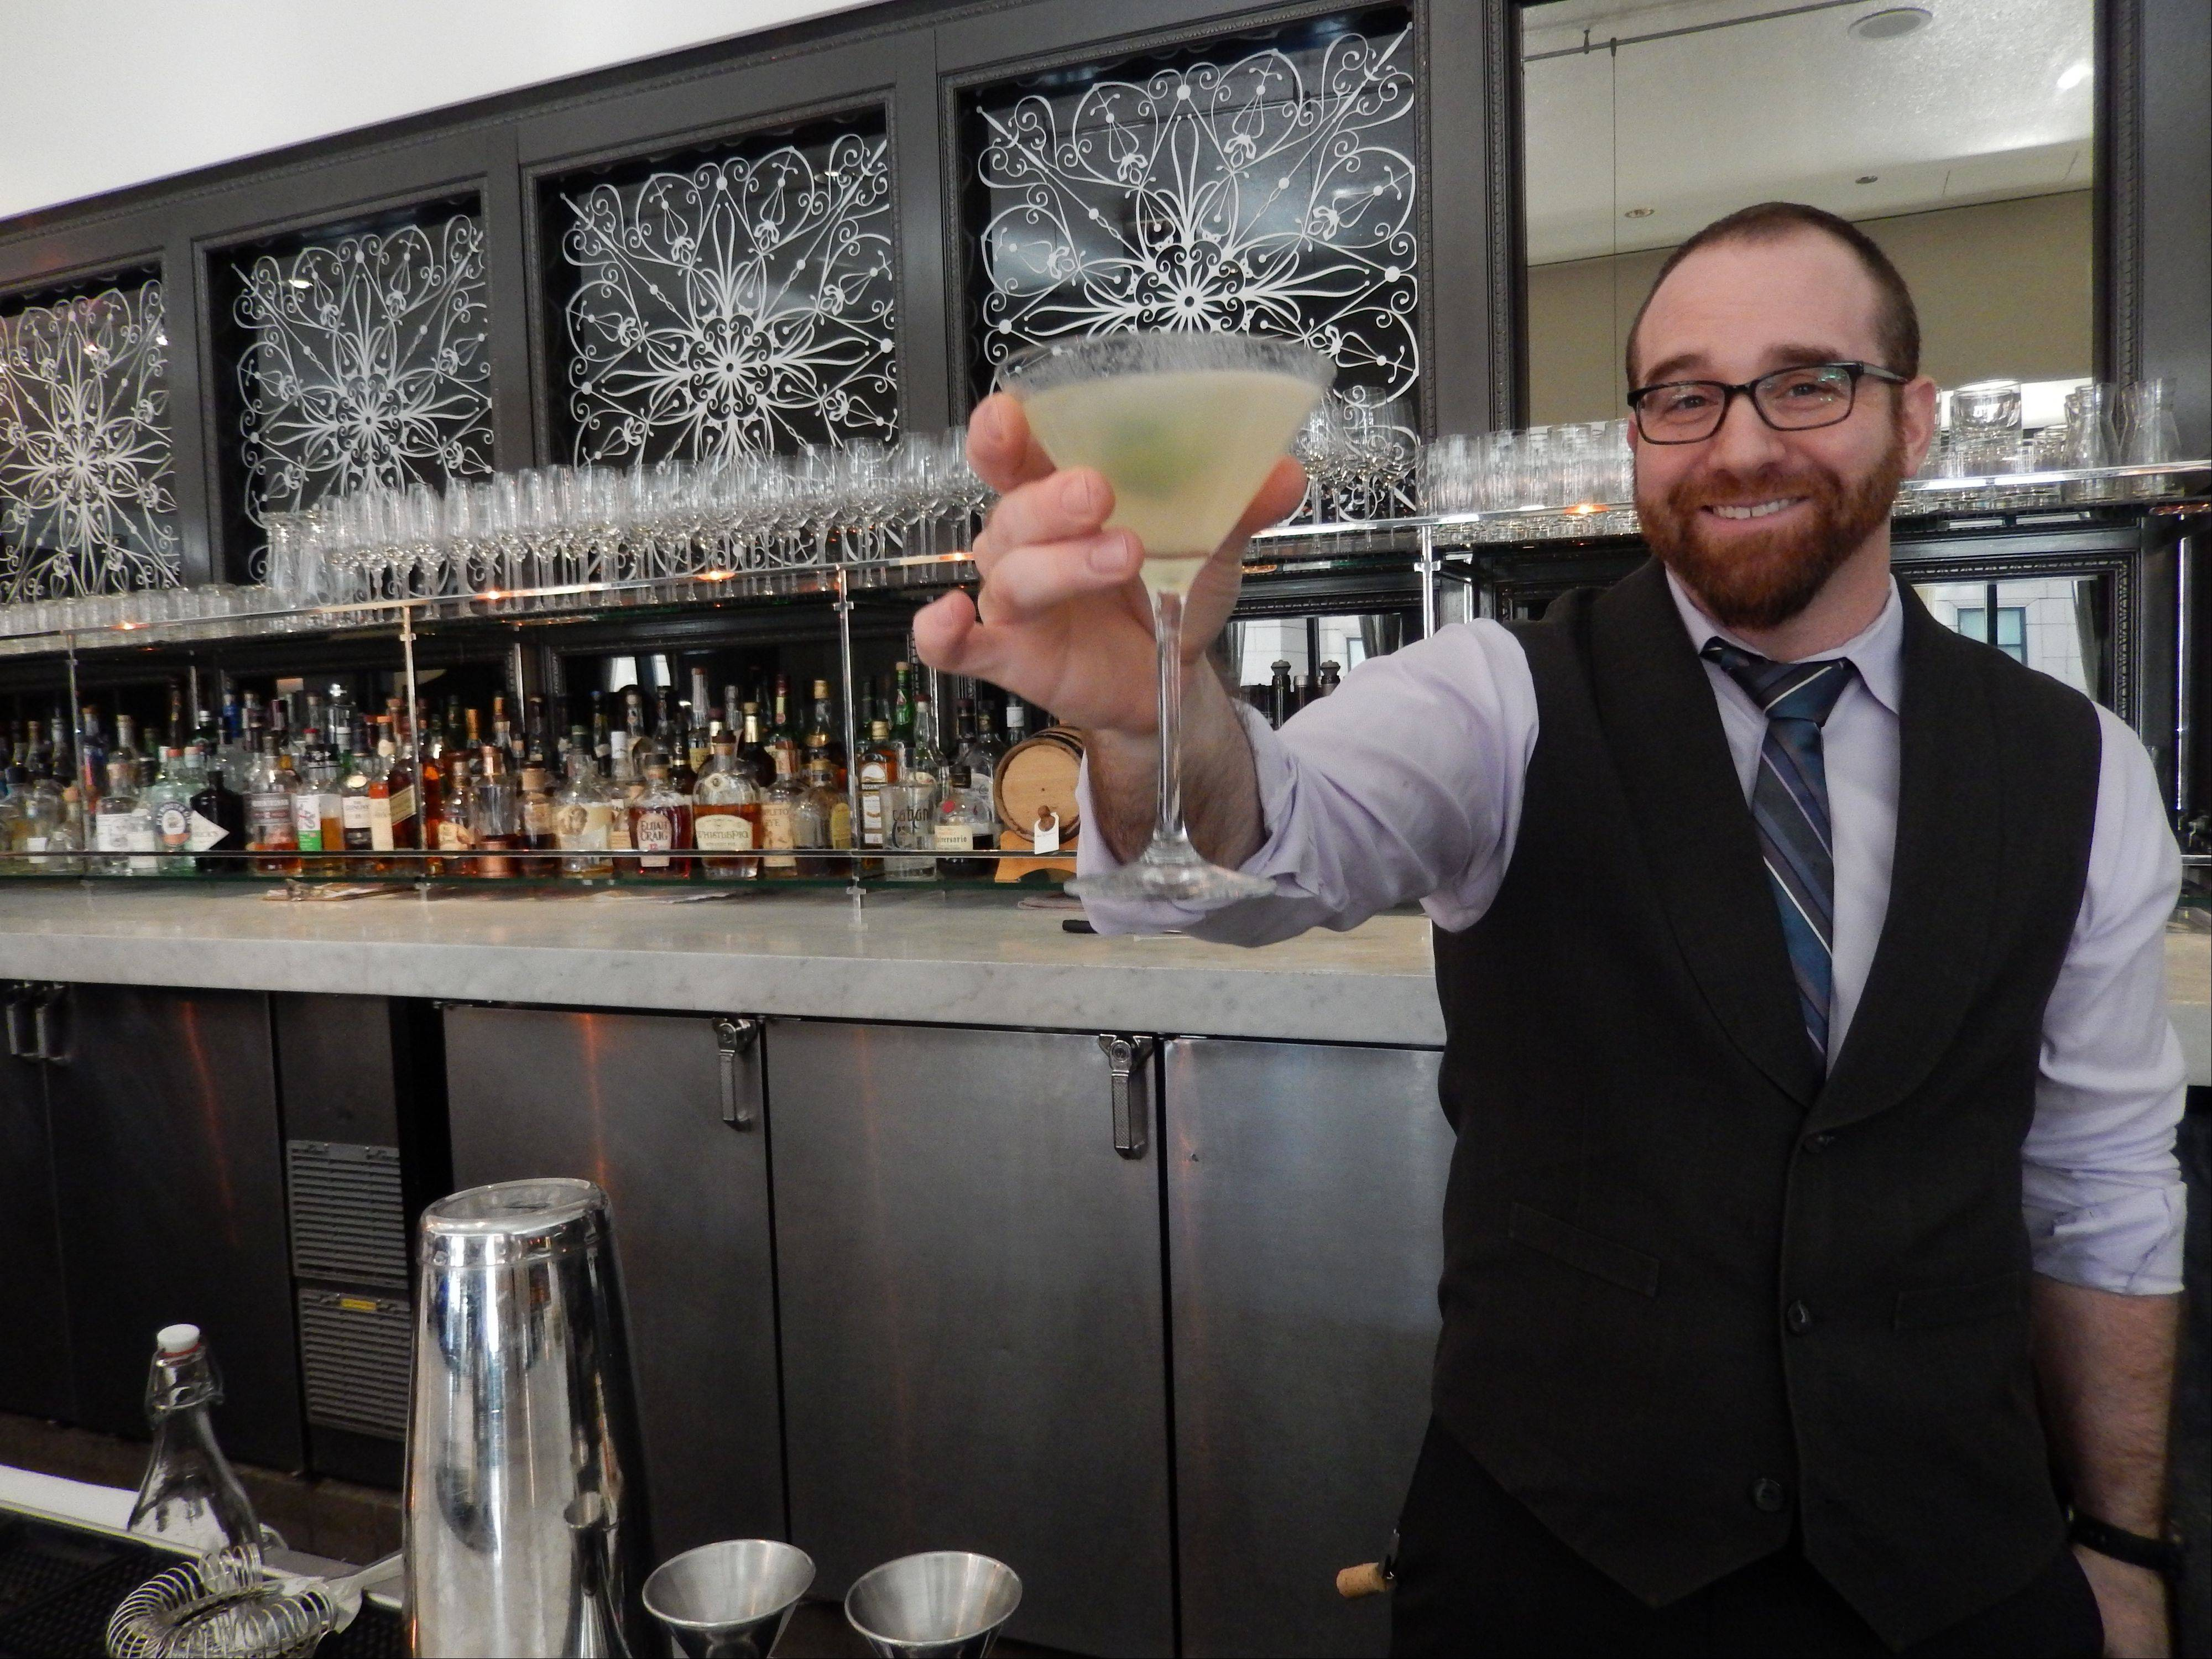 Culinary adventures: Chicago outing opens eyes to worldly cuisine, cocktails